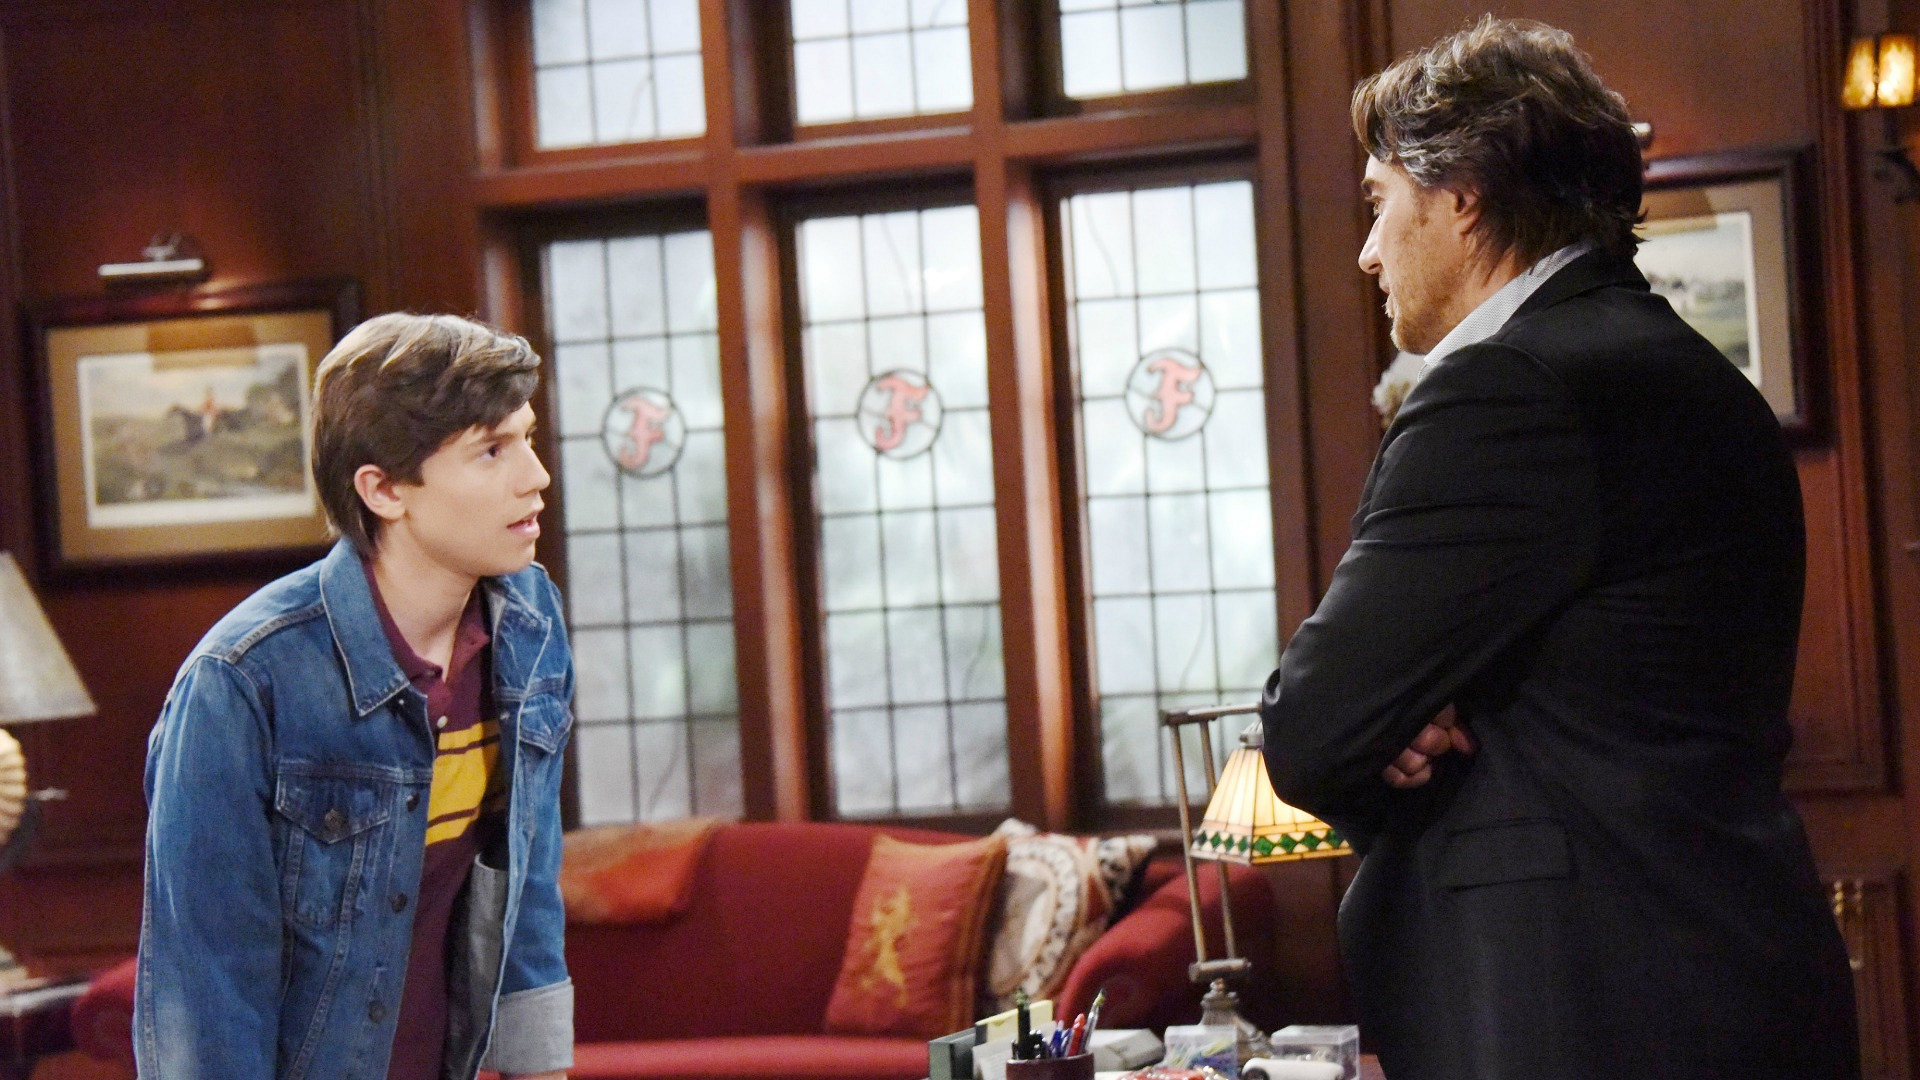 RJ puts pressure on Ridge to stop Brooke from marrying another man.